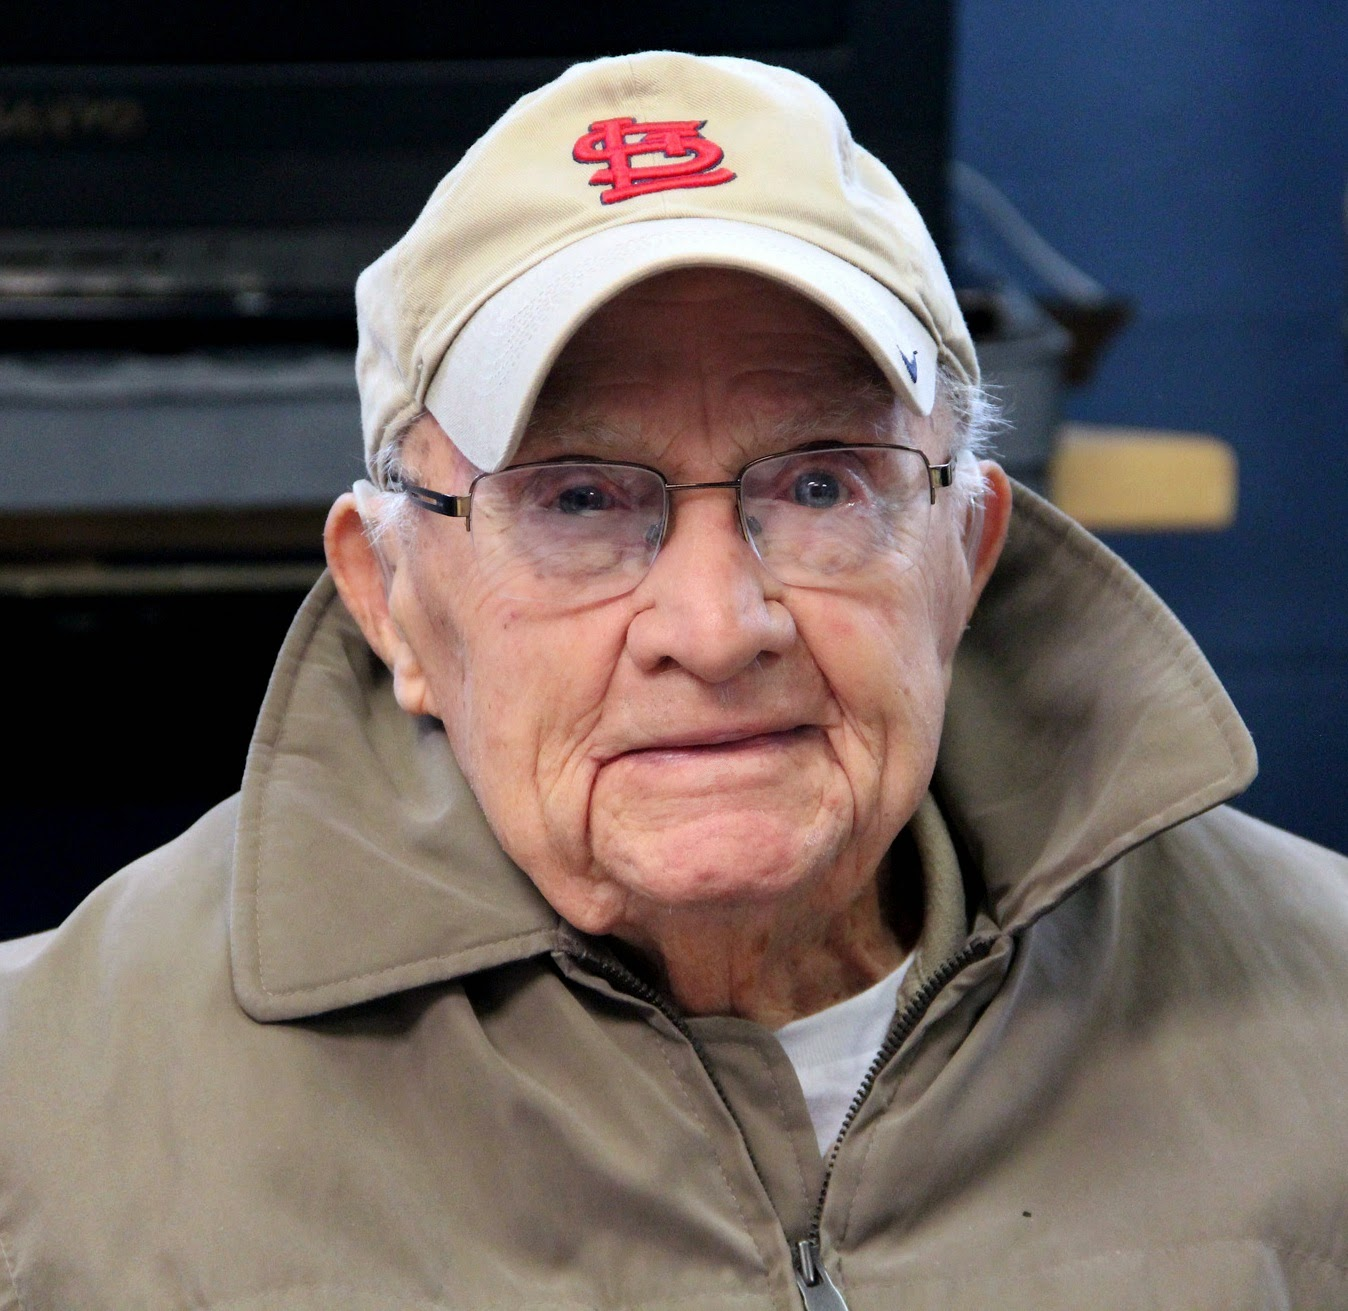 St Louis Businesses And Flew For The Defense Mapping Agency In The 1950s He Continued To Fly Until The Age Of 92 And Owned A Number Of Aircraft